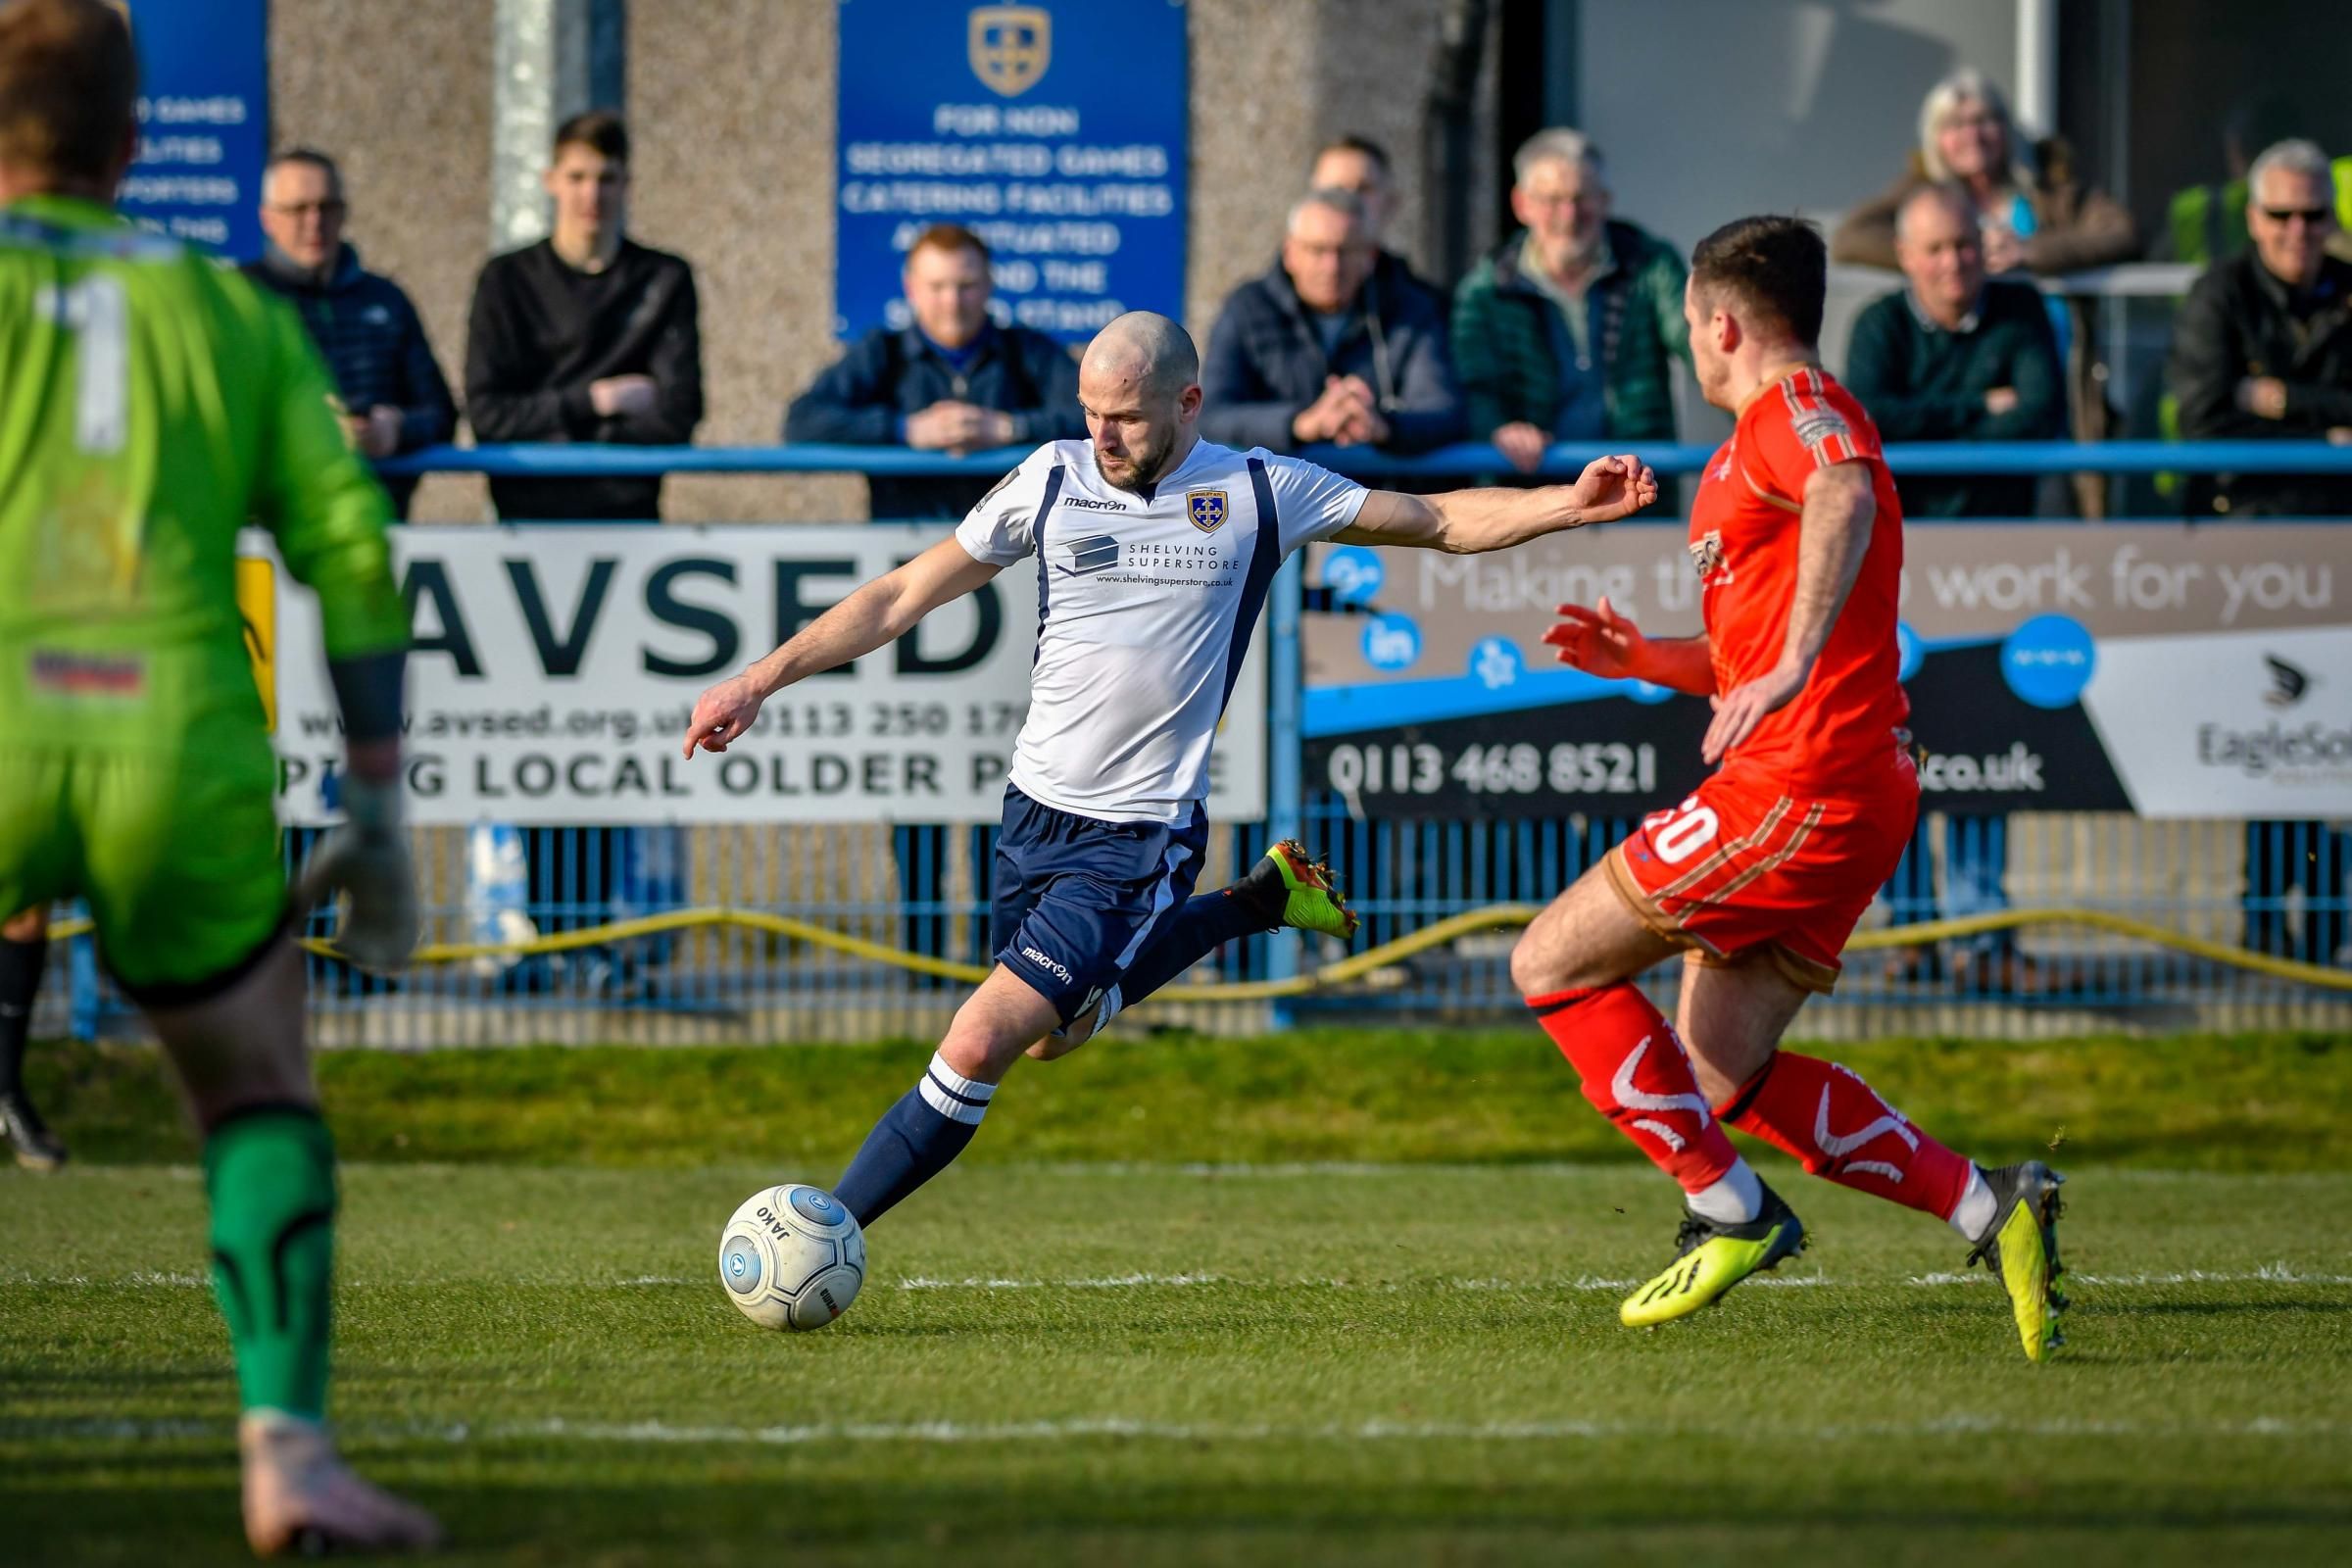 Will Hatfield went close in Guiseley's 2-0 defeat at Guiseley